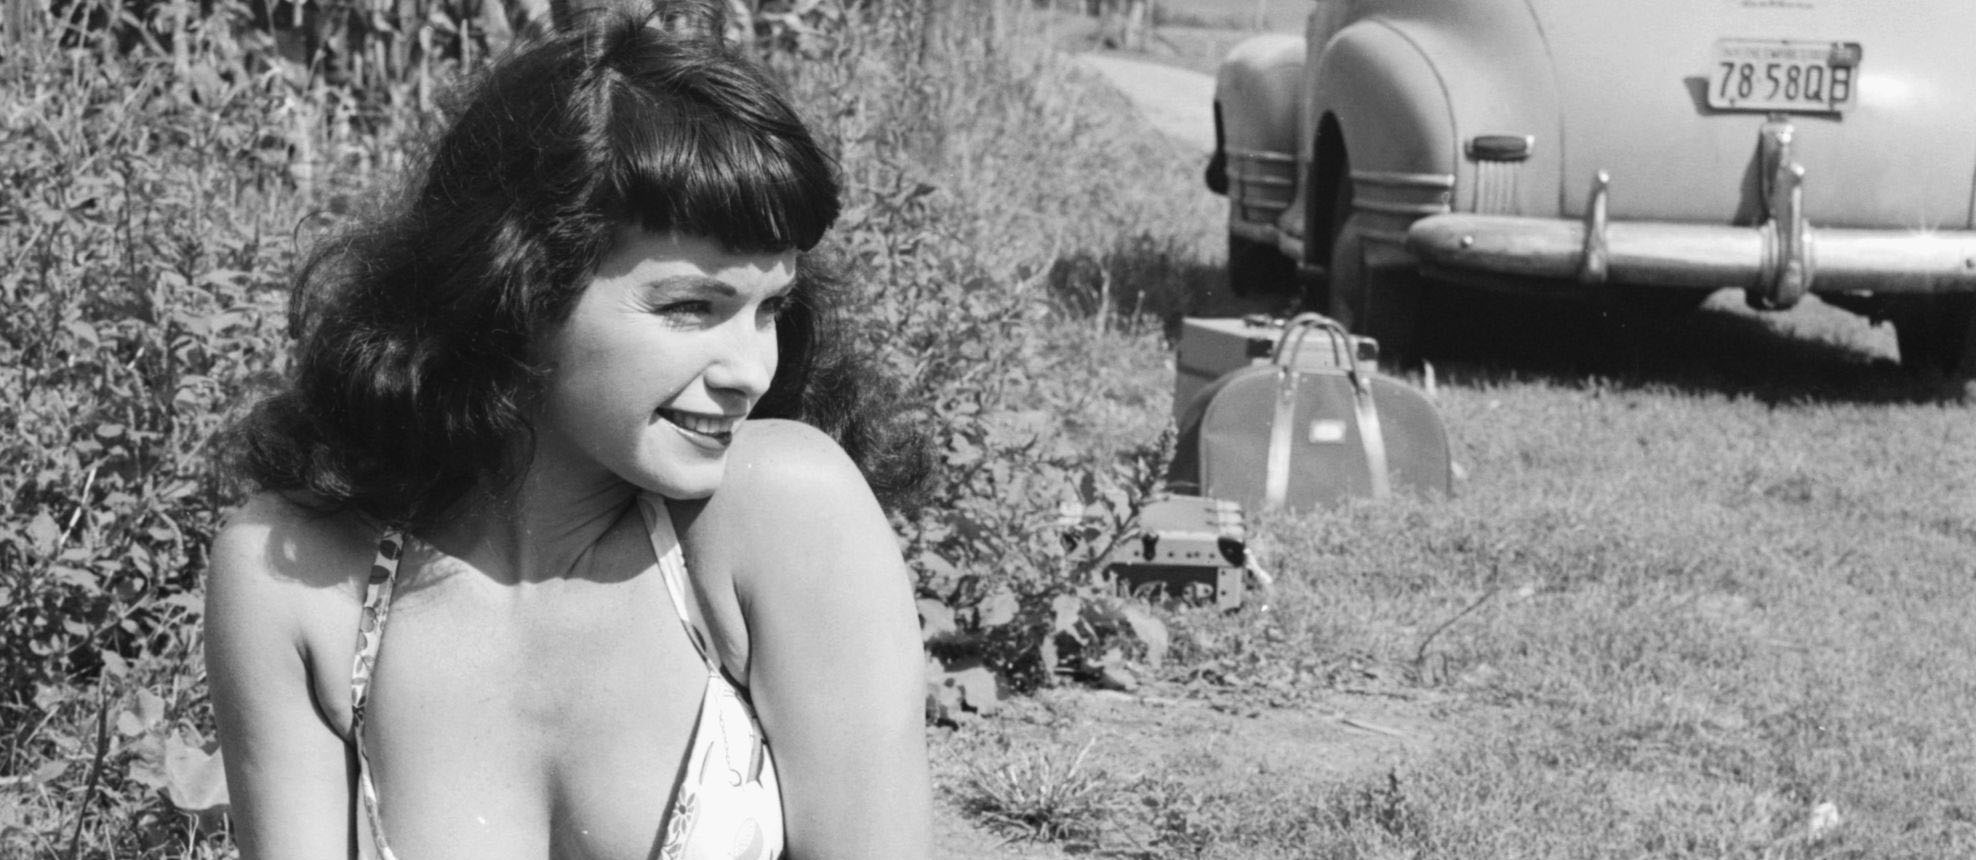 American pin-up Bettie Page, Playboy playmate of the month for January 1955, sunbathes in a country lane, New York state, 1956. (Photo by Weegee(Arthur Fellig)/International Center of Photography/Getty Images)